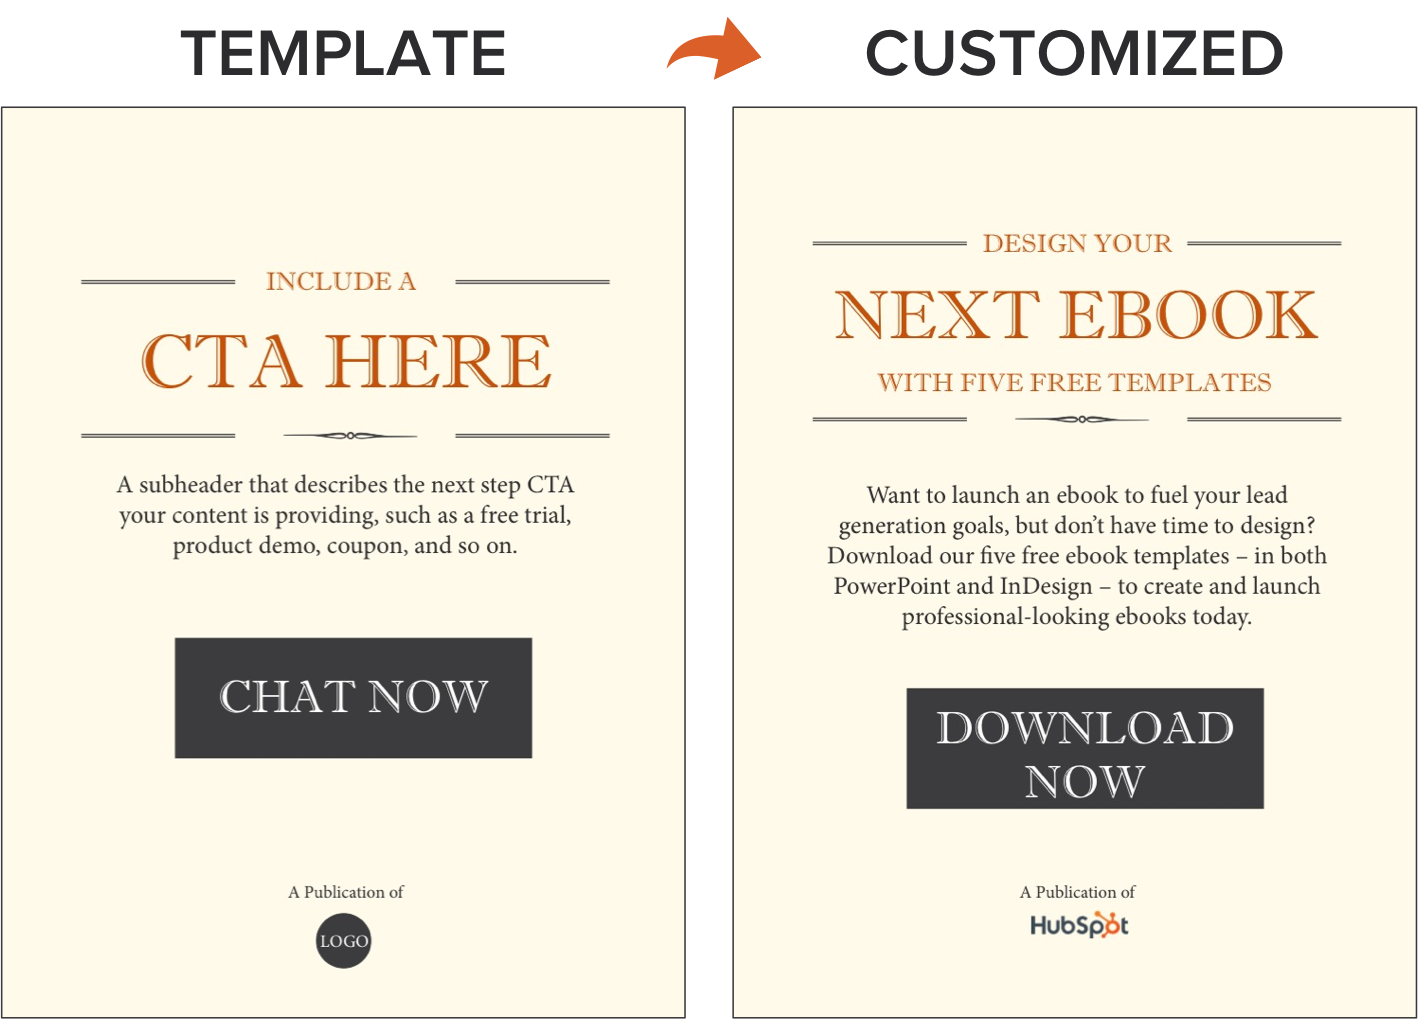 how to create an ebook 10 - Free Ebook Templates